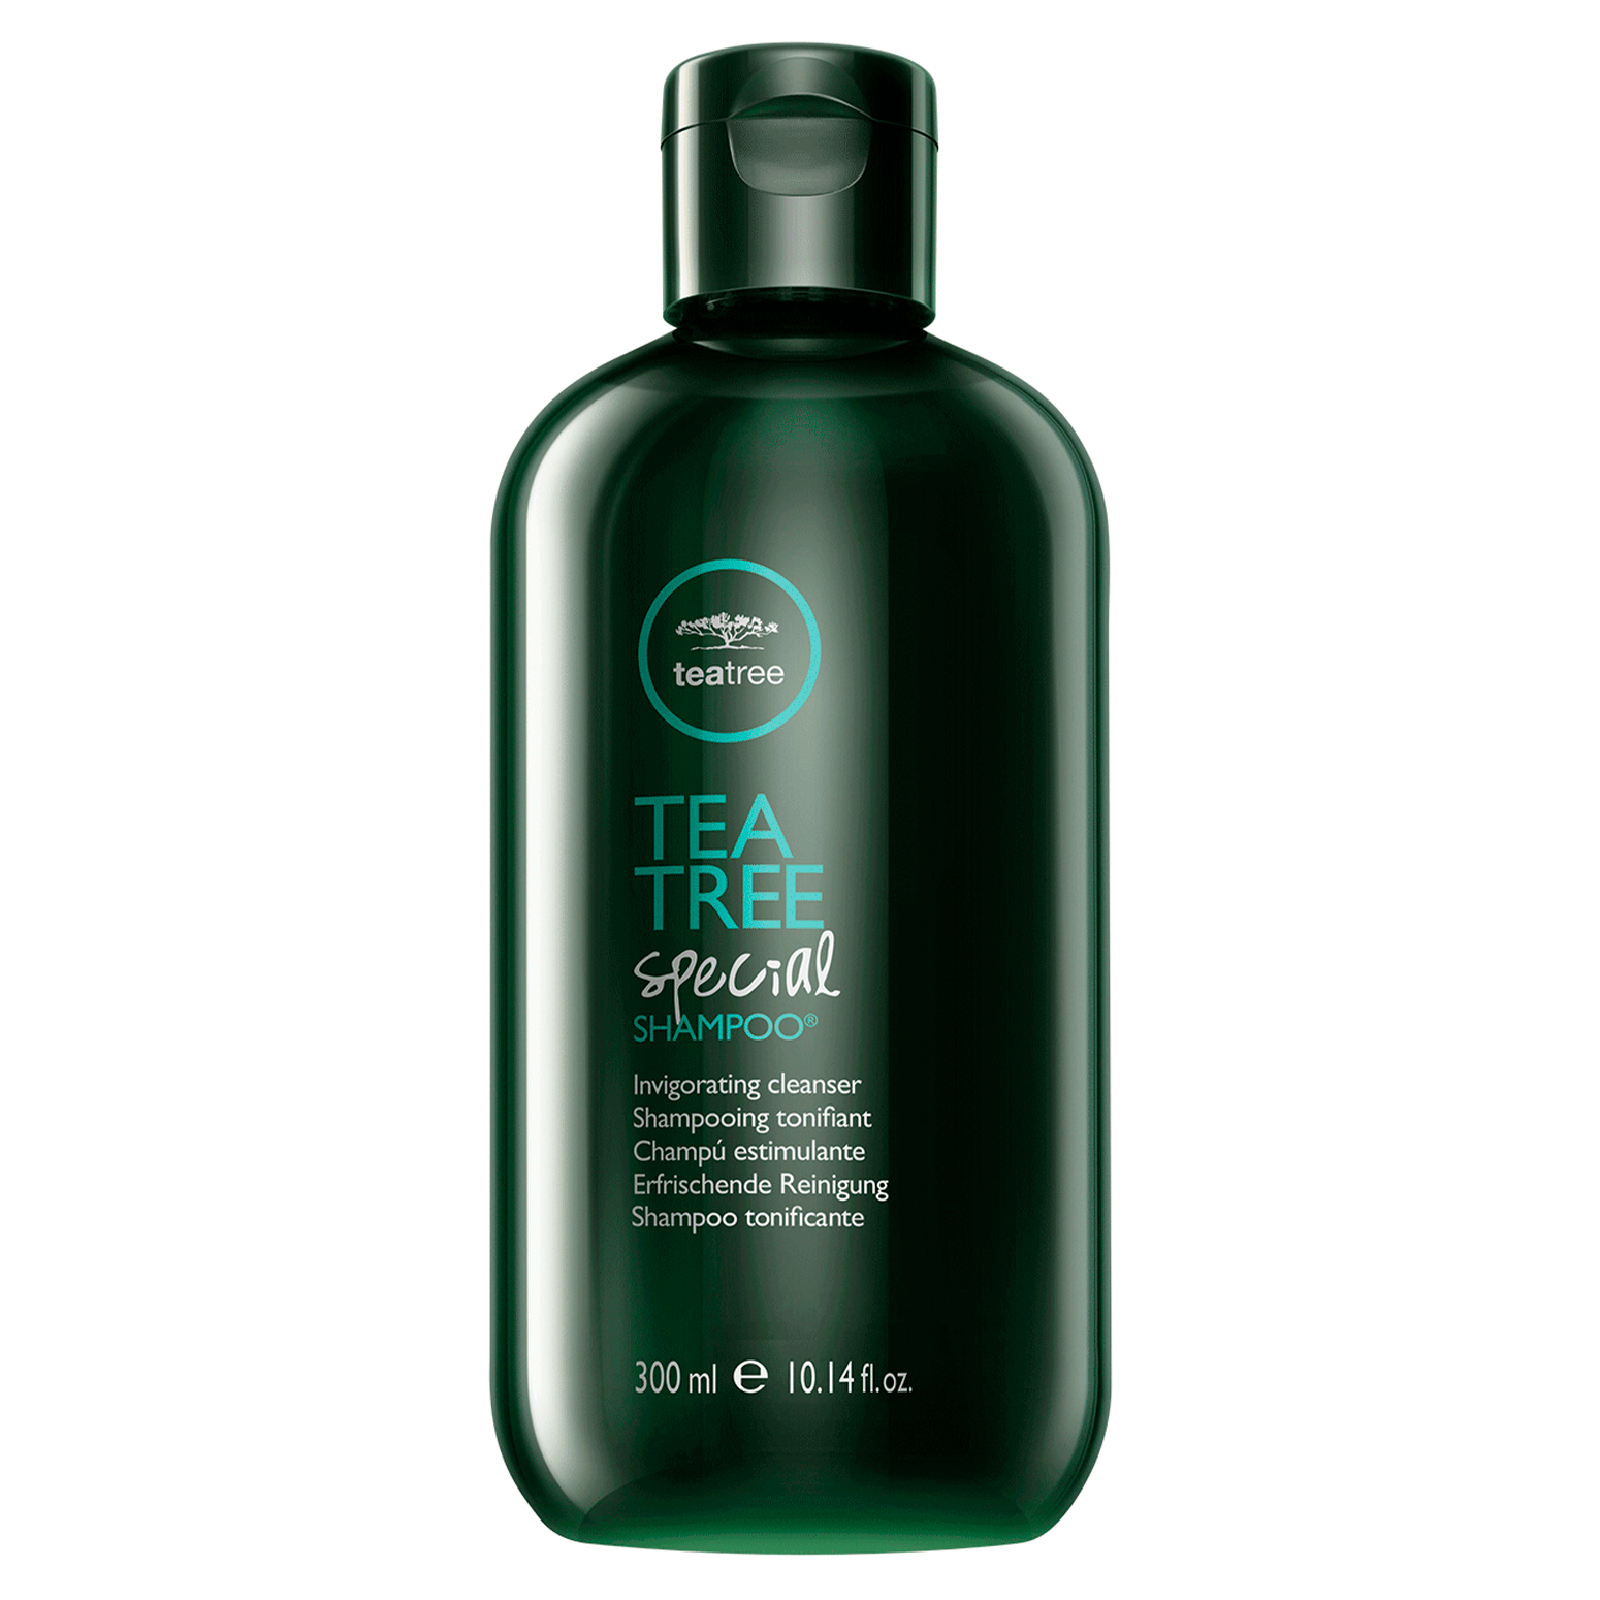 Tea Tree - Special Shampoo